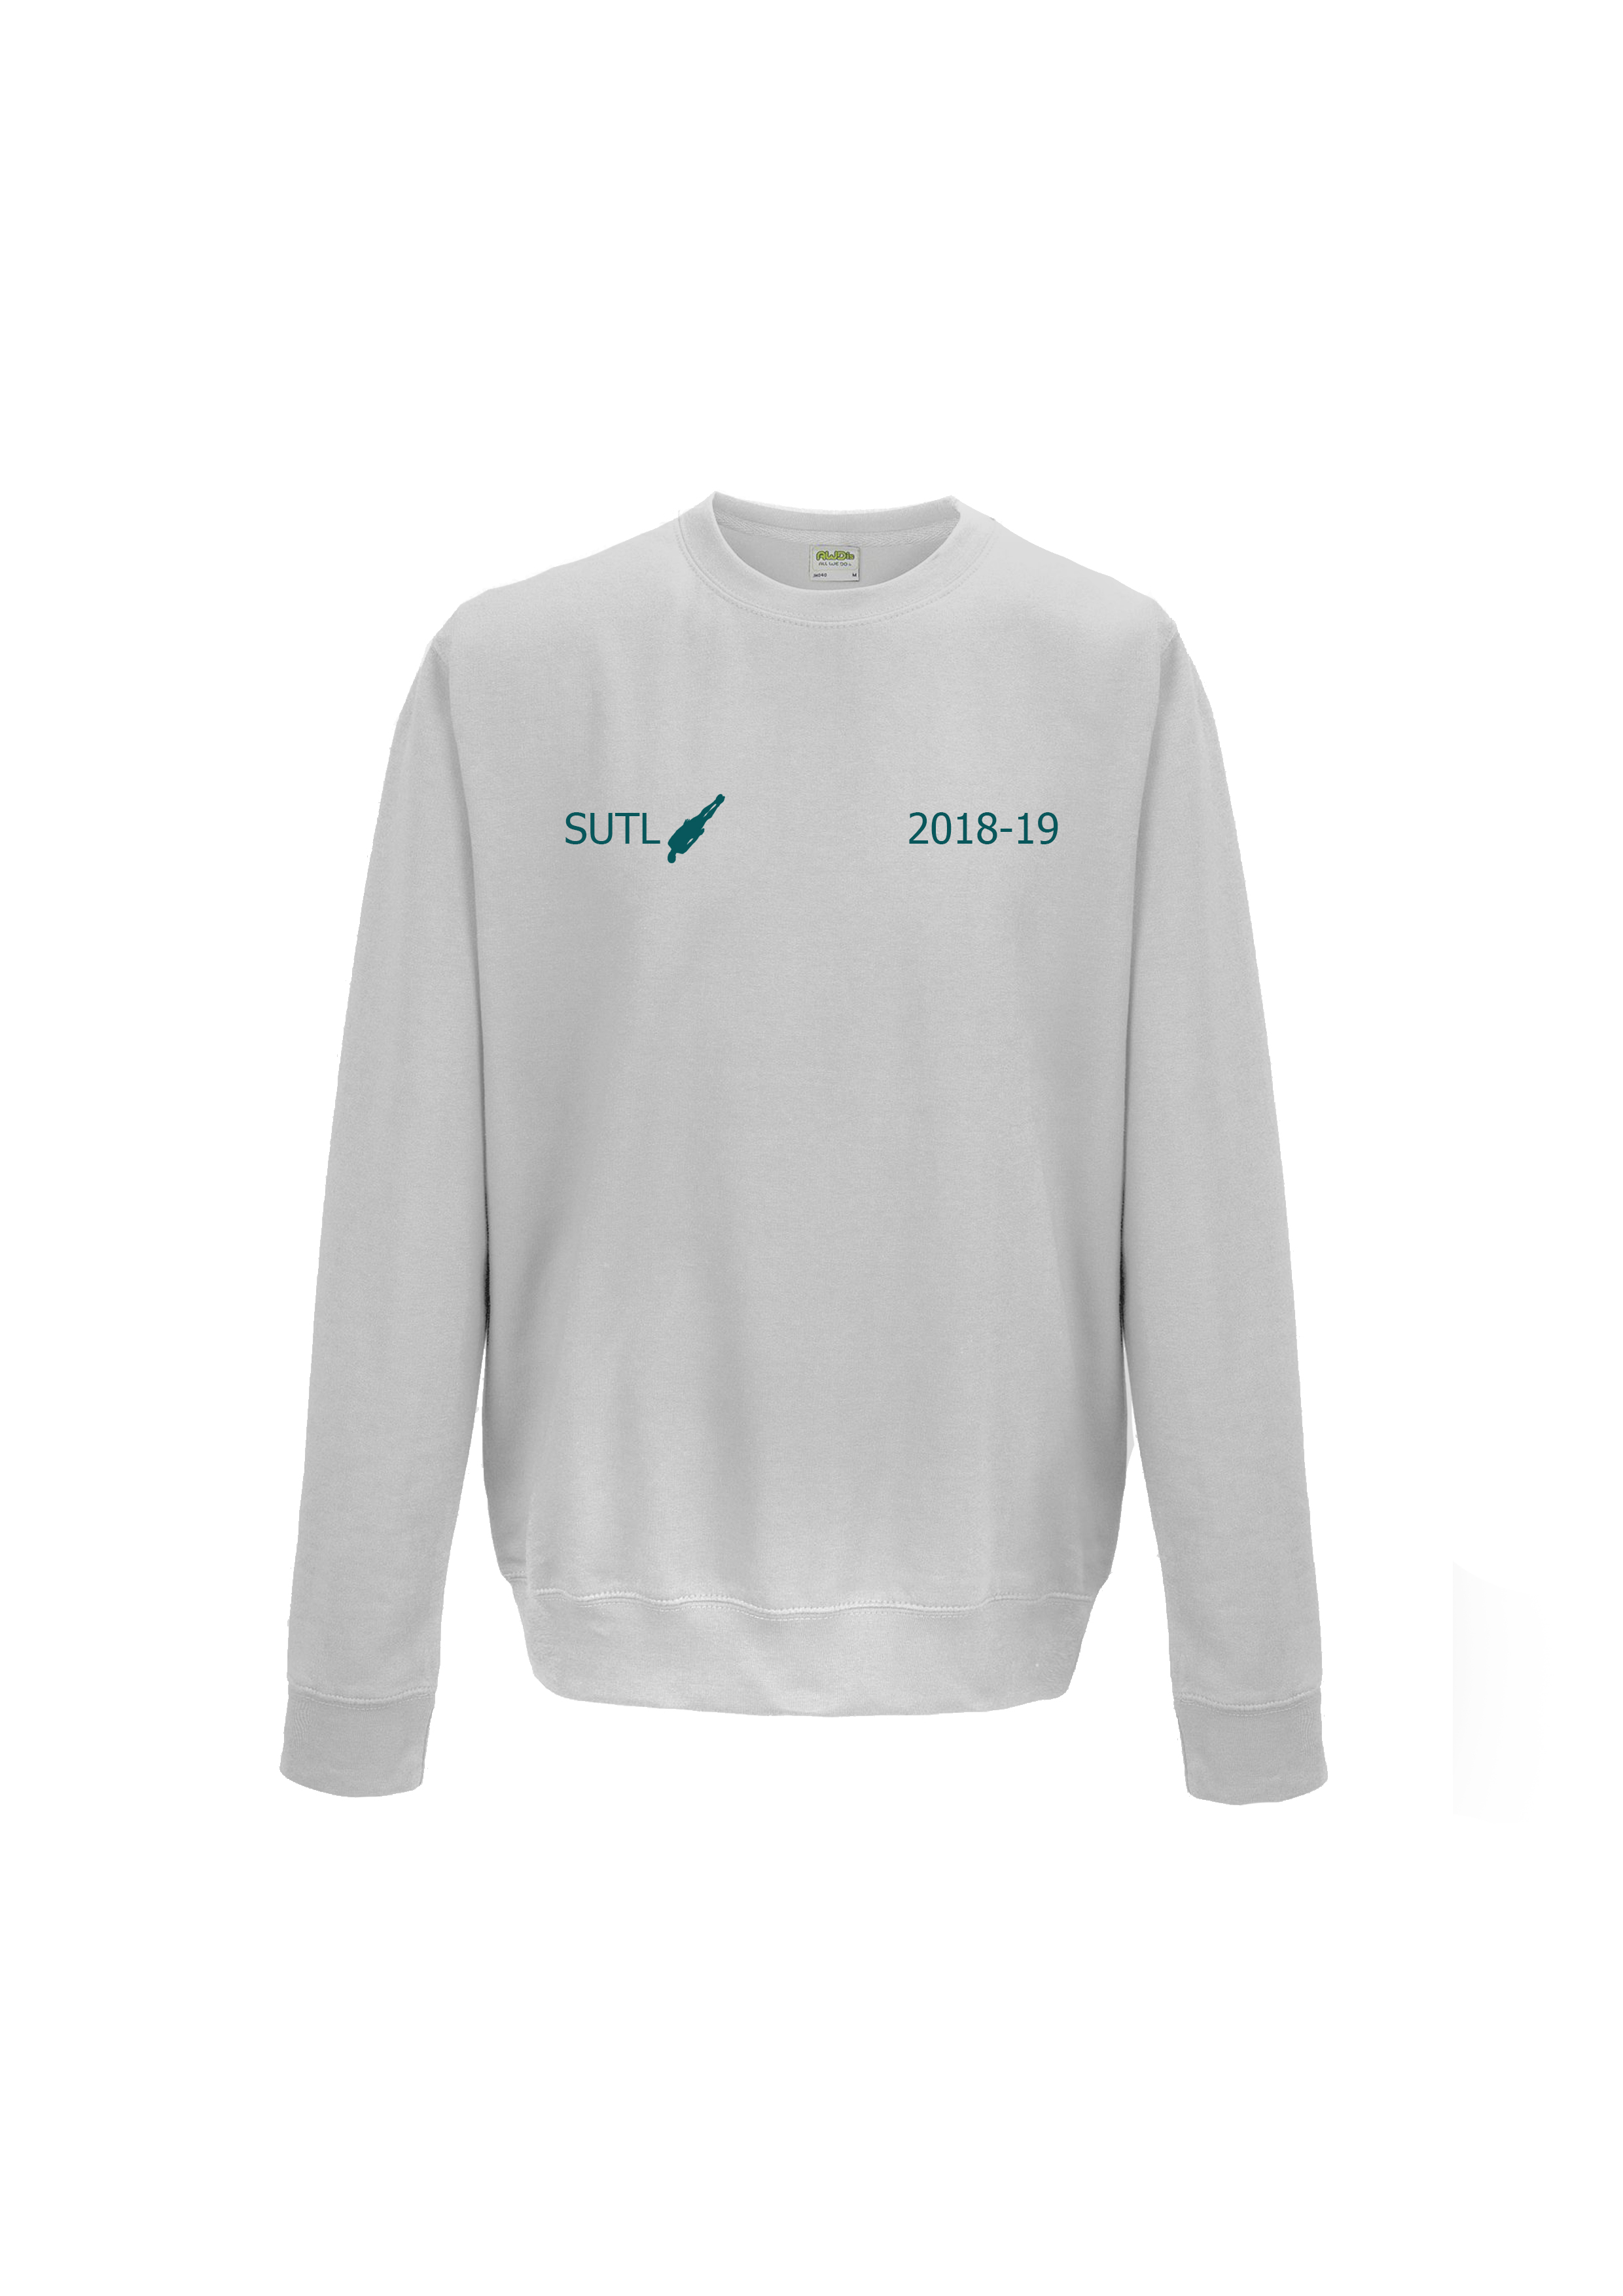 Front of SUTL jumper